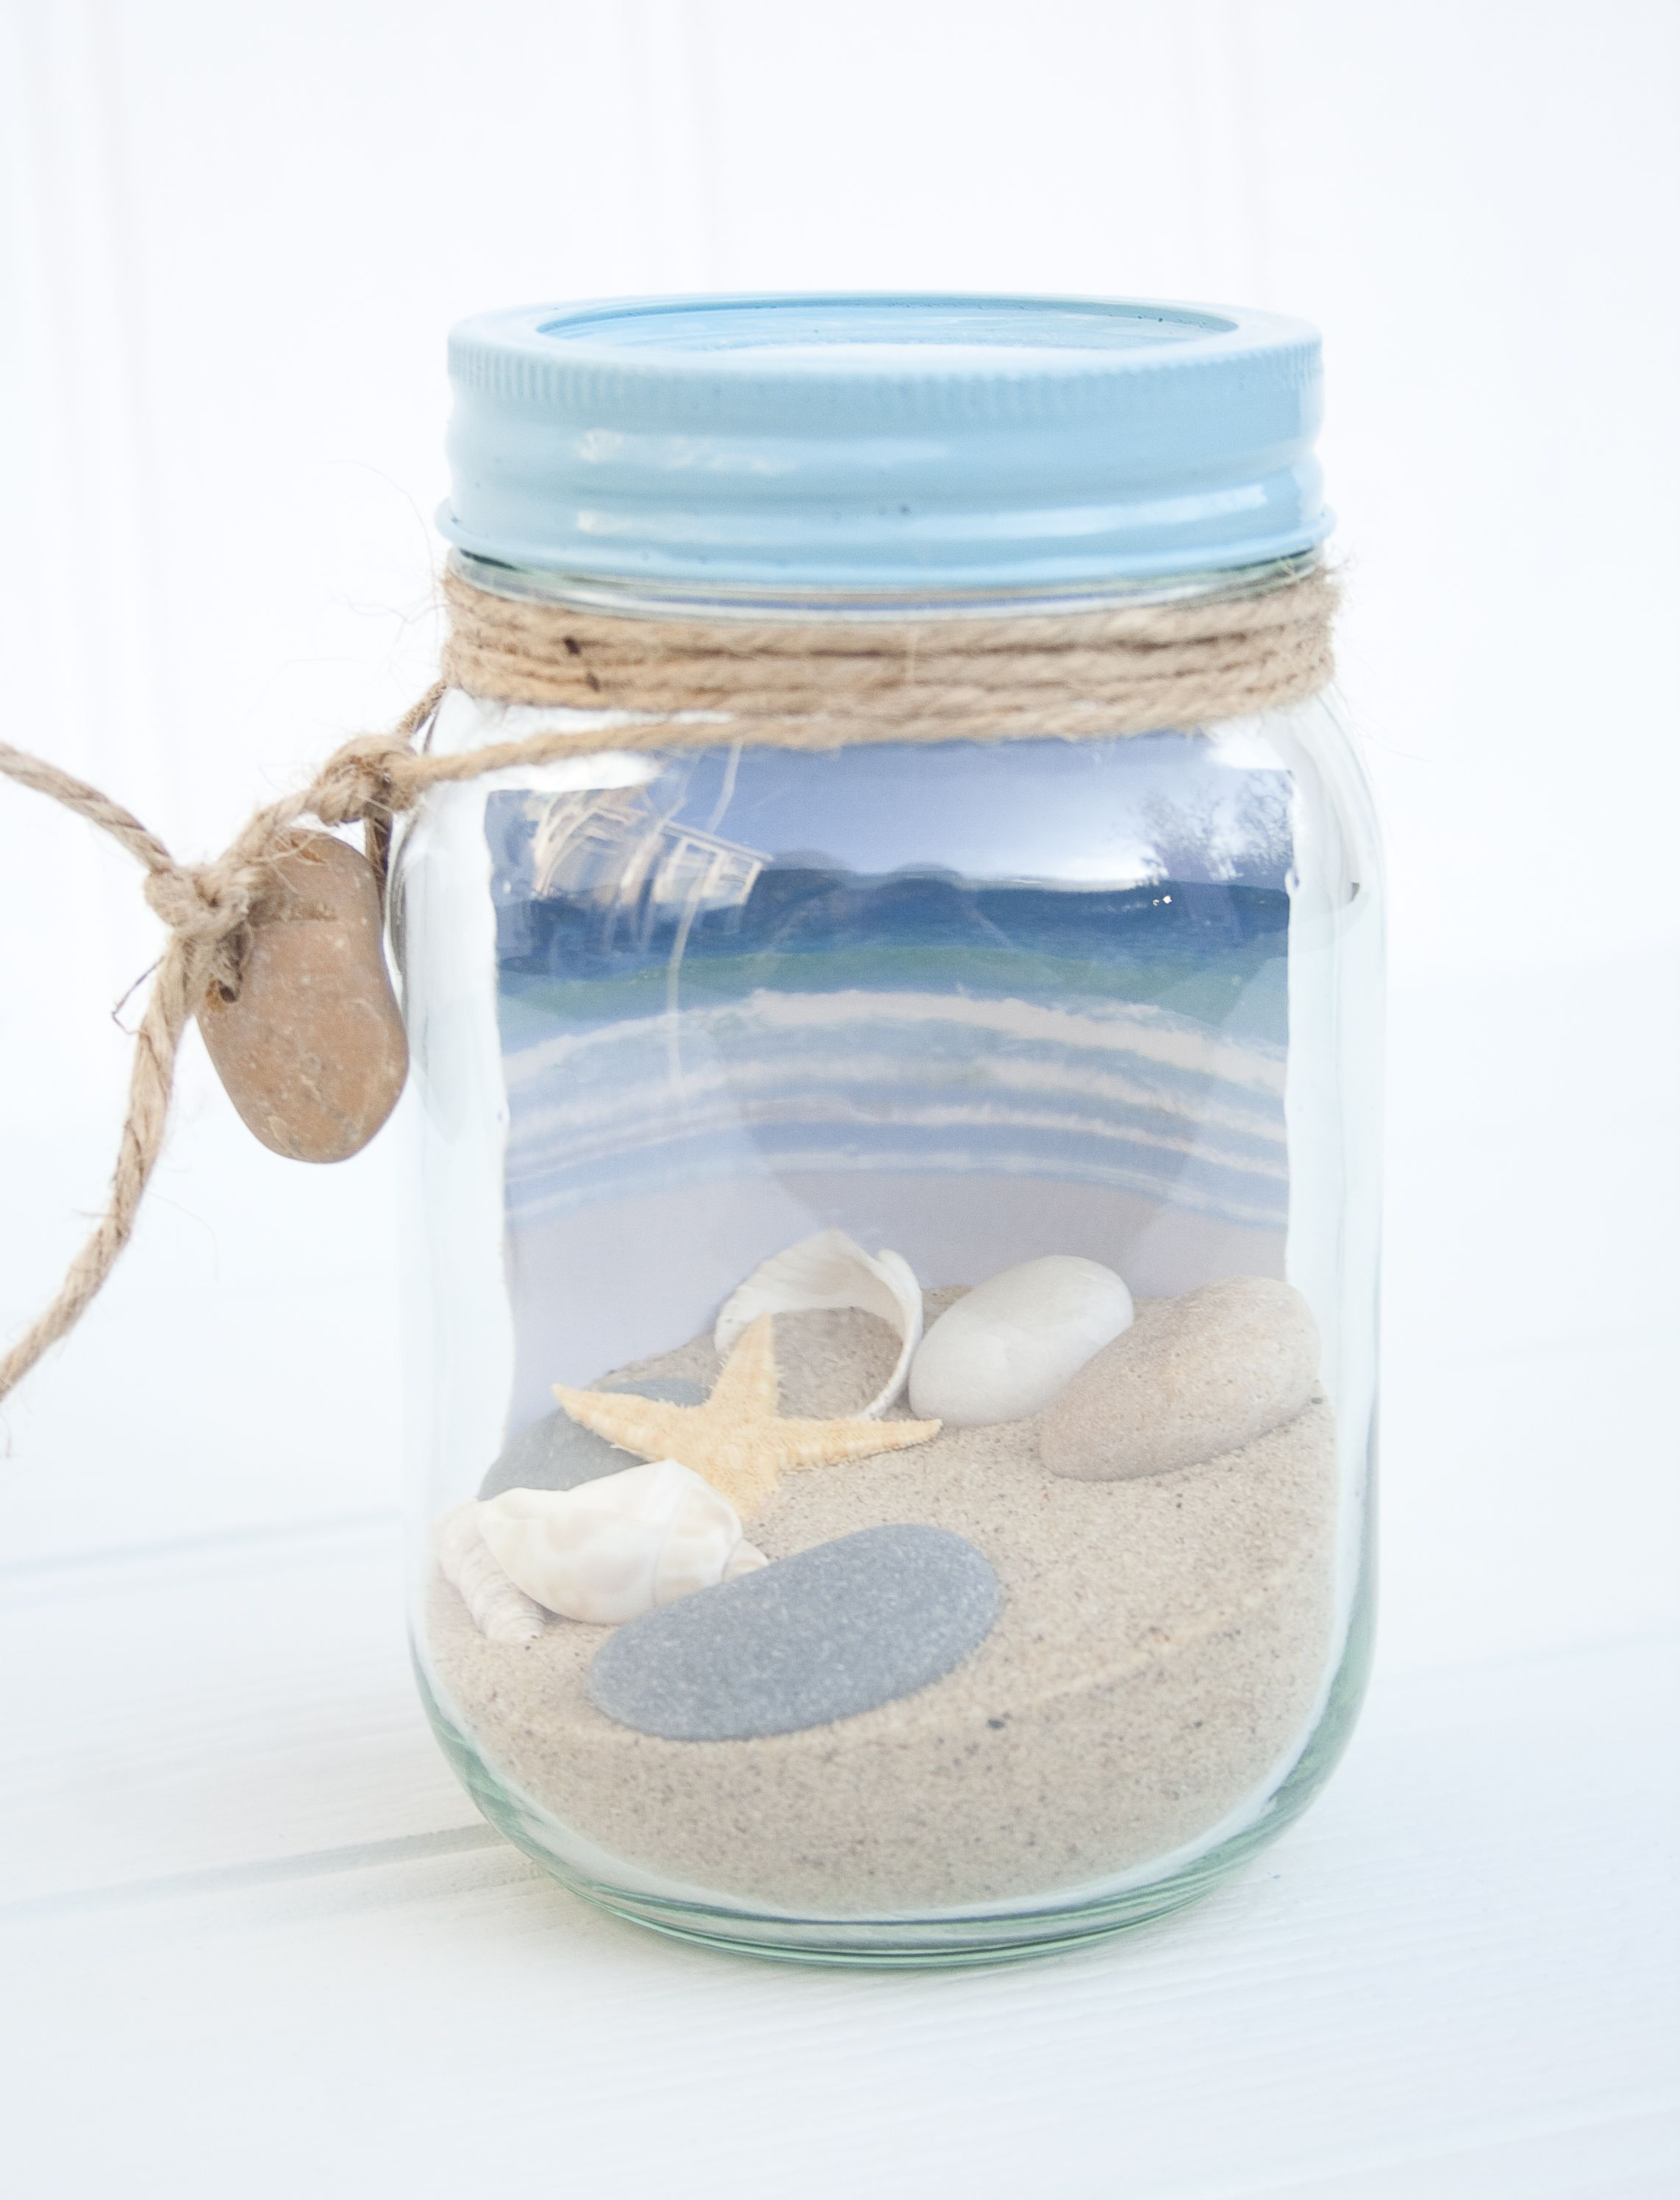 Www Driftwooddreaming Co Uk Wp Content Uploads 2013 05 Beach In A Jar Small Jpg Beach Crafts Seashell Crafts Beach Diy